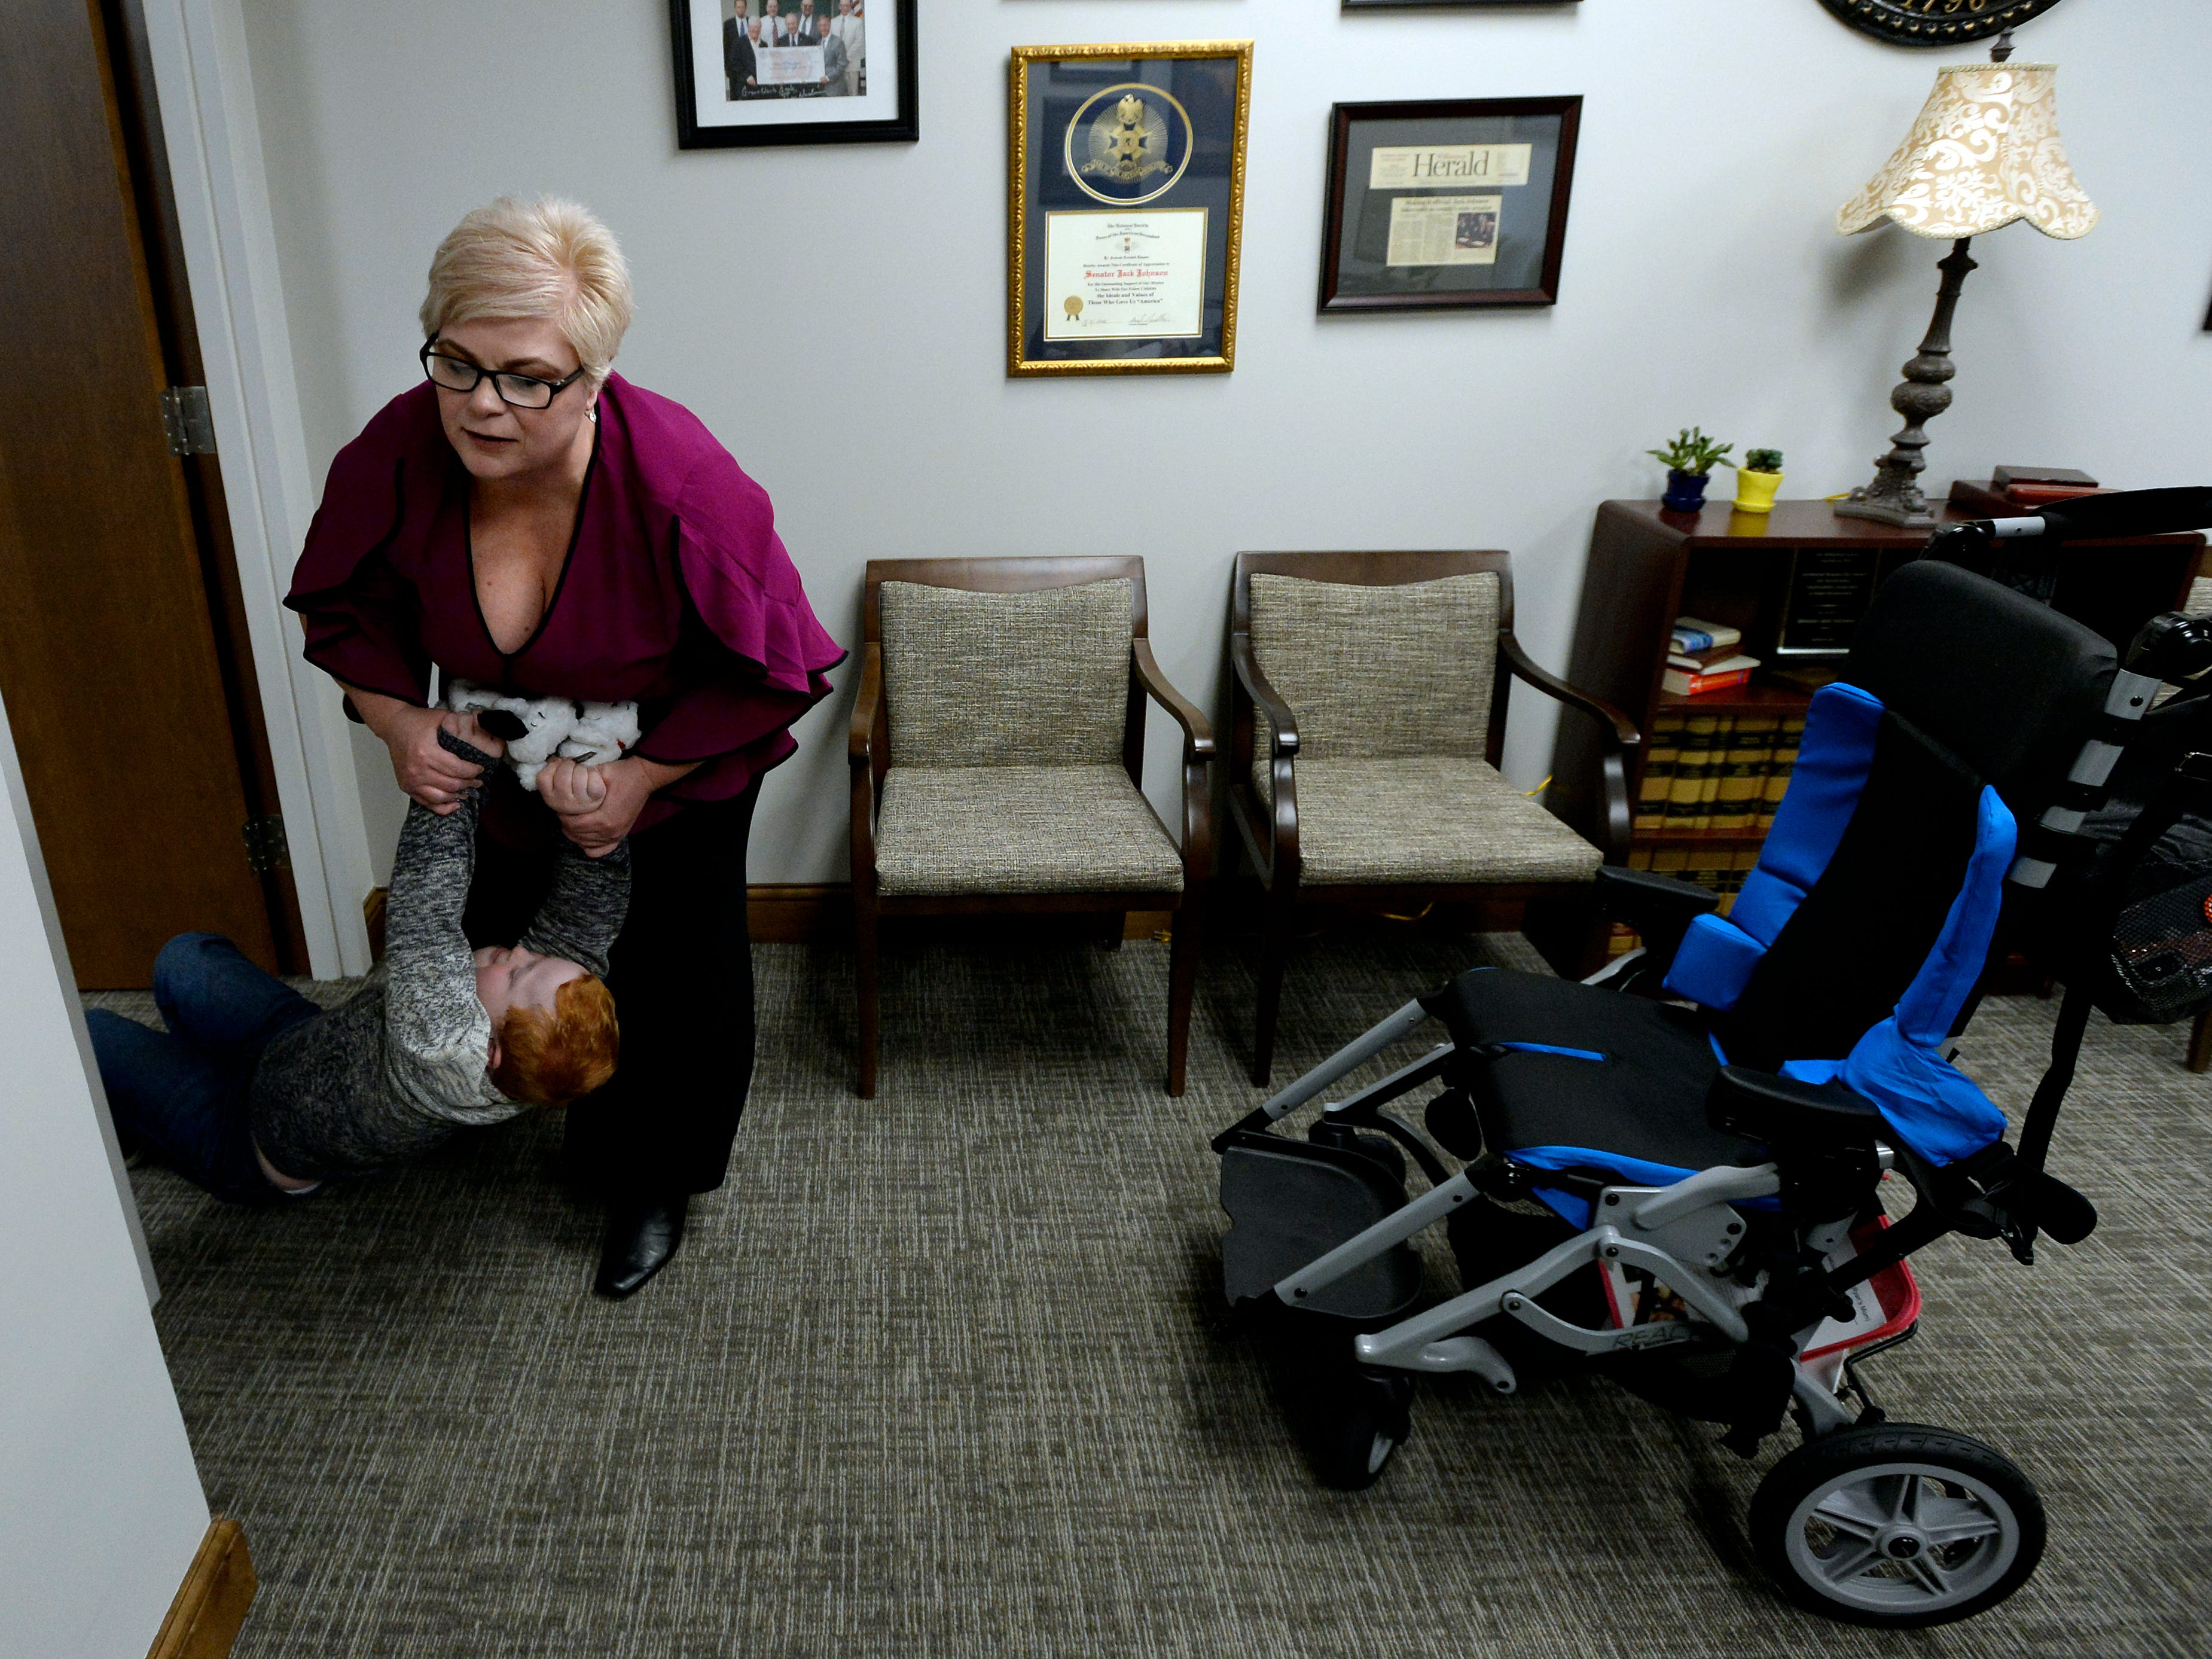 Single mother Jennifer Schultz struggles to stop her son Hatcher Ryan, 10, who has Down syndrome, from crawling into the office of Tennessee State Senate Majority Leader Jack Johnson before she speaks  with him during Disability Day on the Hill Tuesday, Feb. 12, 2019, in Nashville, Tenn. Families and advocates of people with disabilities in Tennessee met with lawmakers to express concerns and the needs of the disabled in the state.